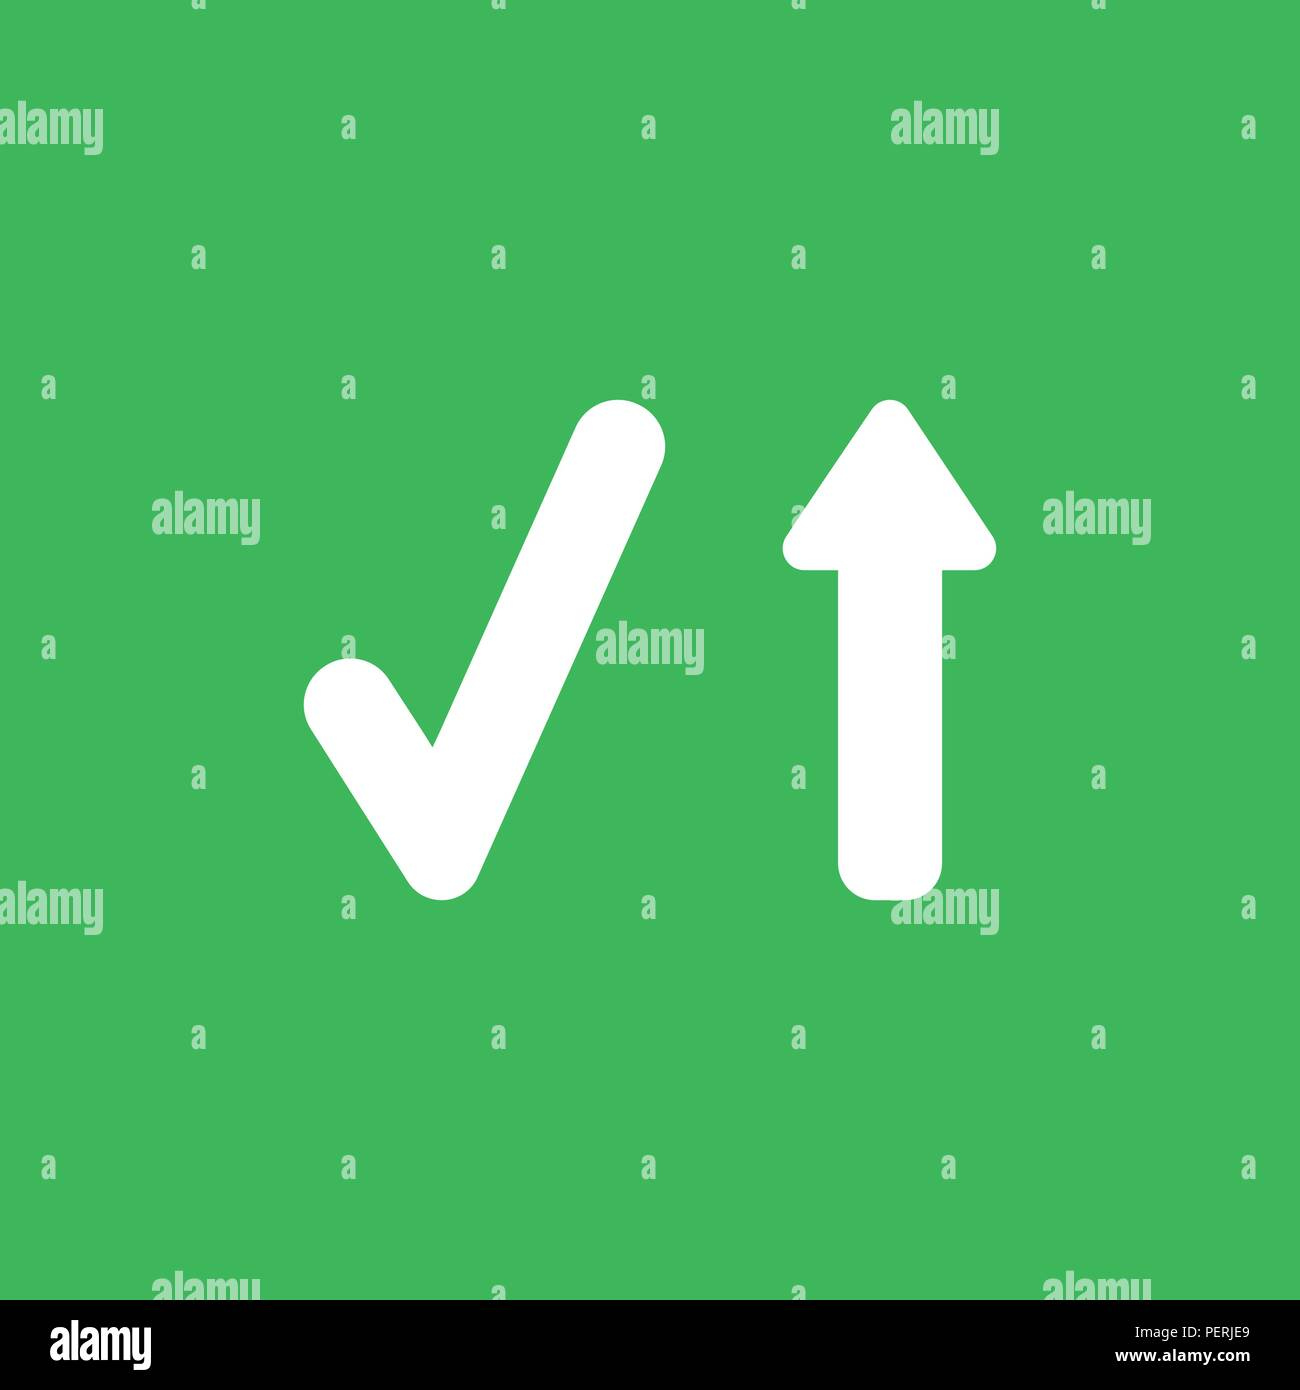 Flat Vector Icon Concept Of Check Mark With Arrow Moving Up On Green